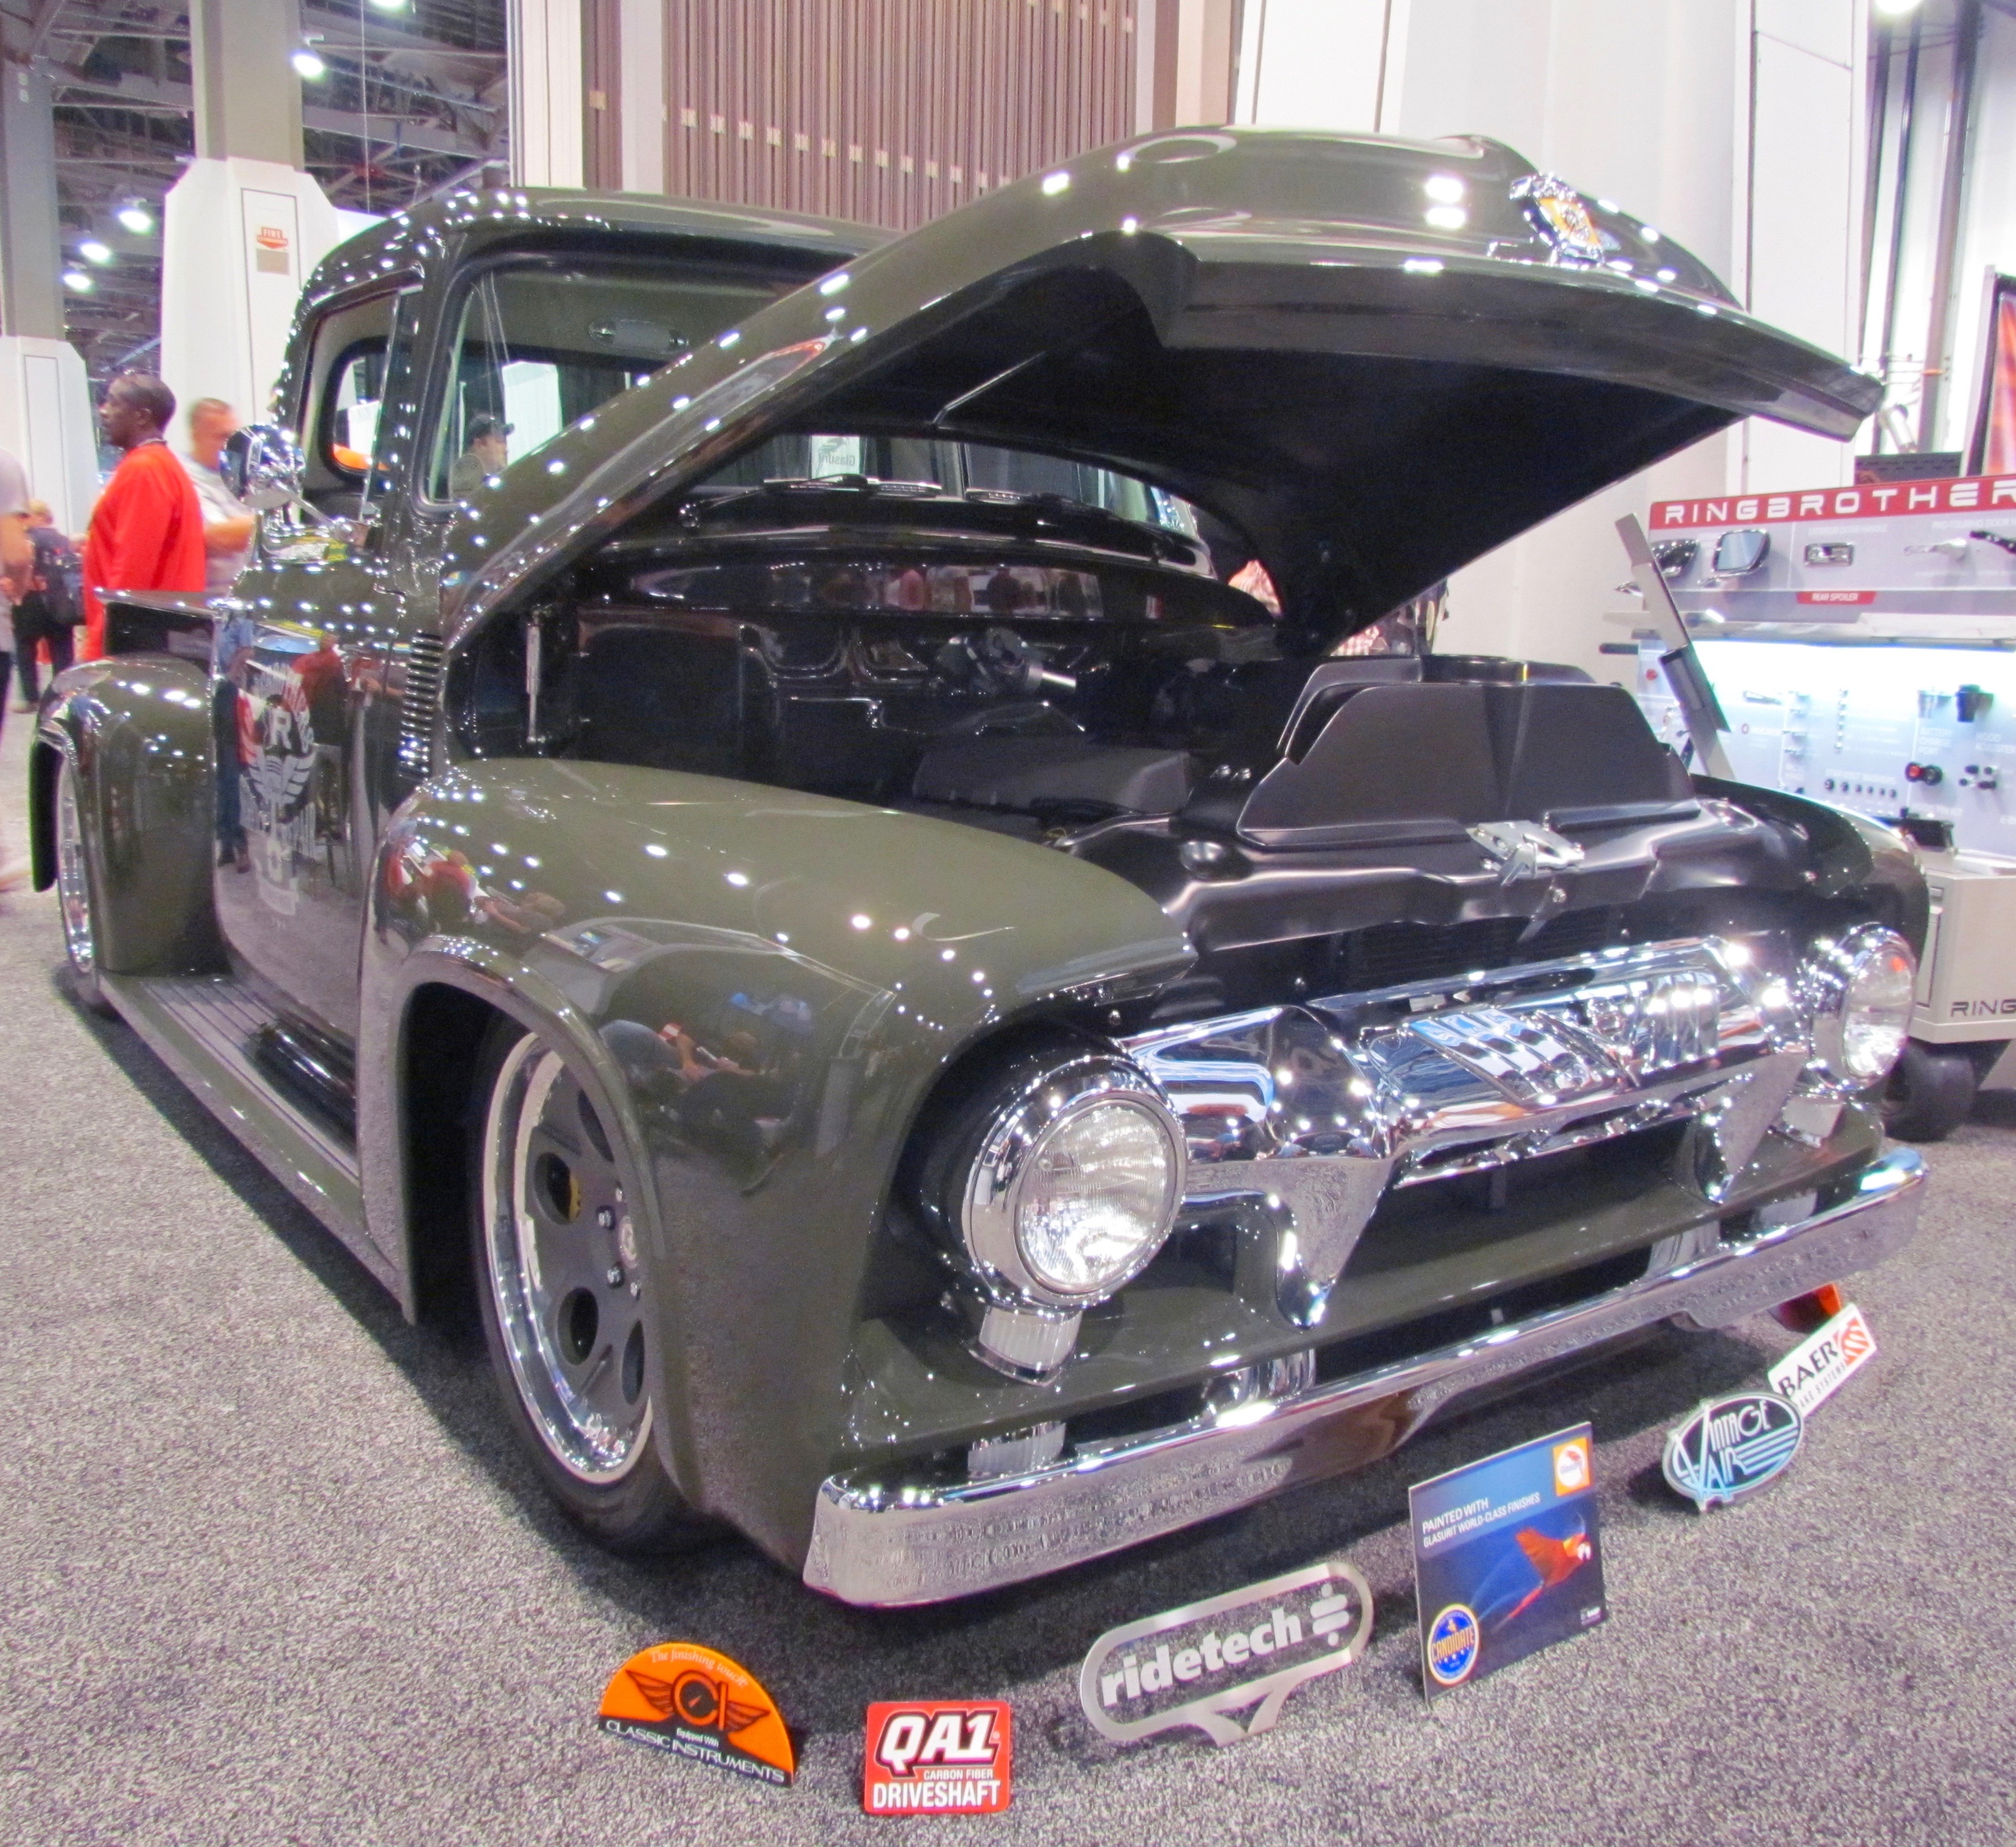 SEMA Seen: See the Ringbrothers cars at this show, not on a TV series